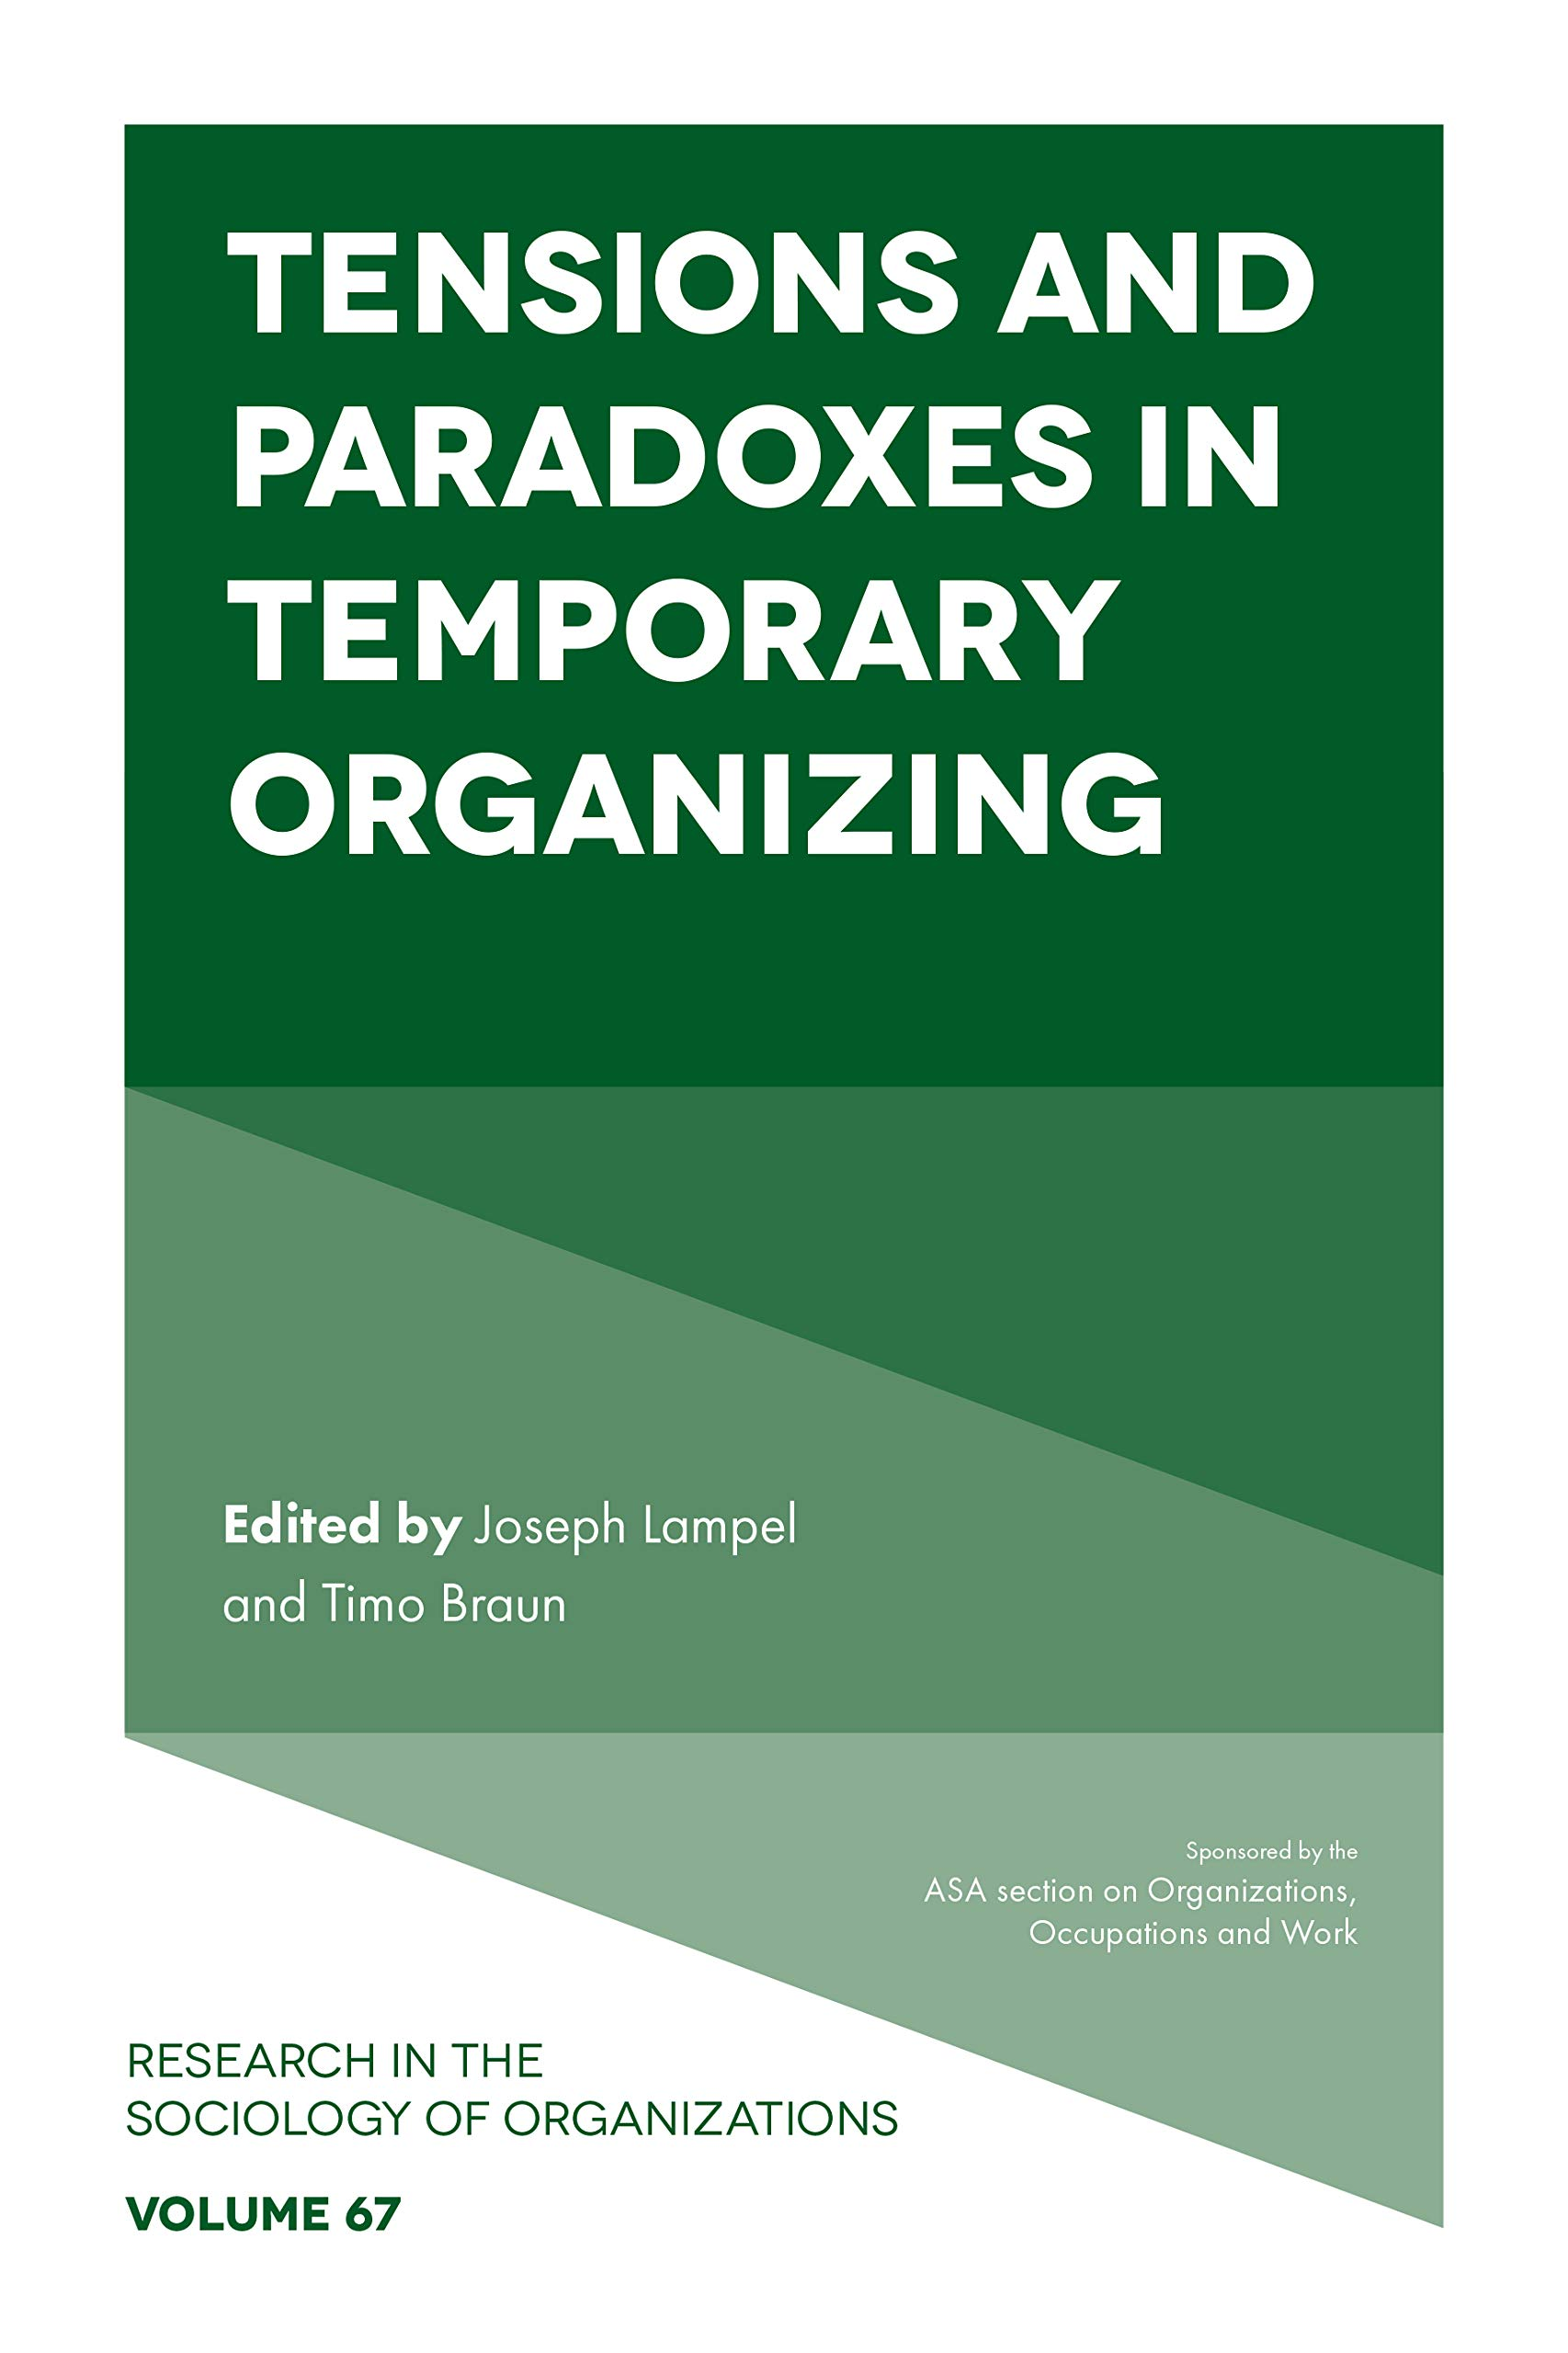 Tensions and paradoxes in temporary organizing (Research in the Sociology of Organizations Book 67)